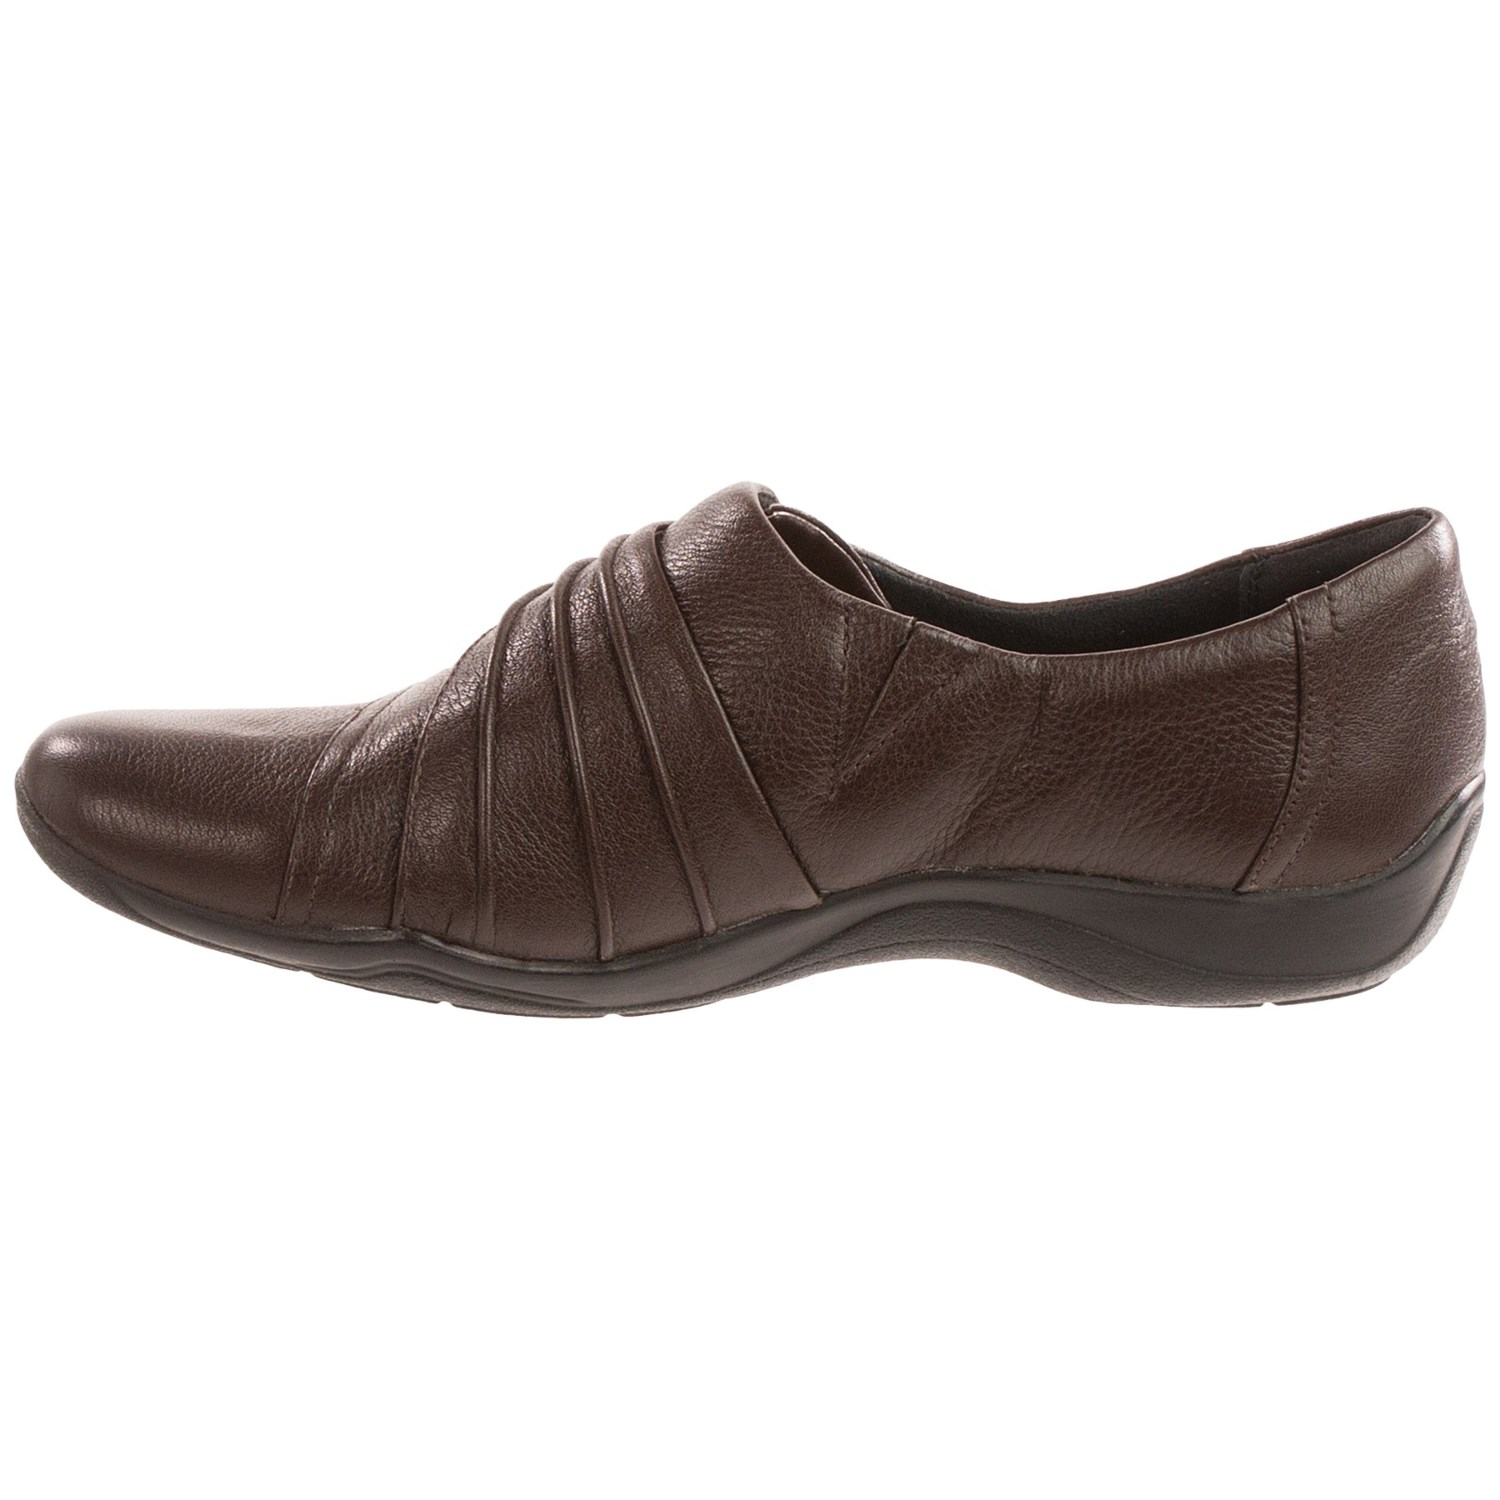 Clarks Shoes Clearance Outlet